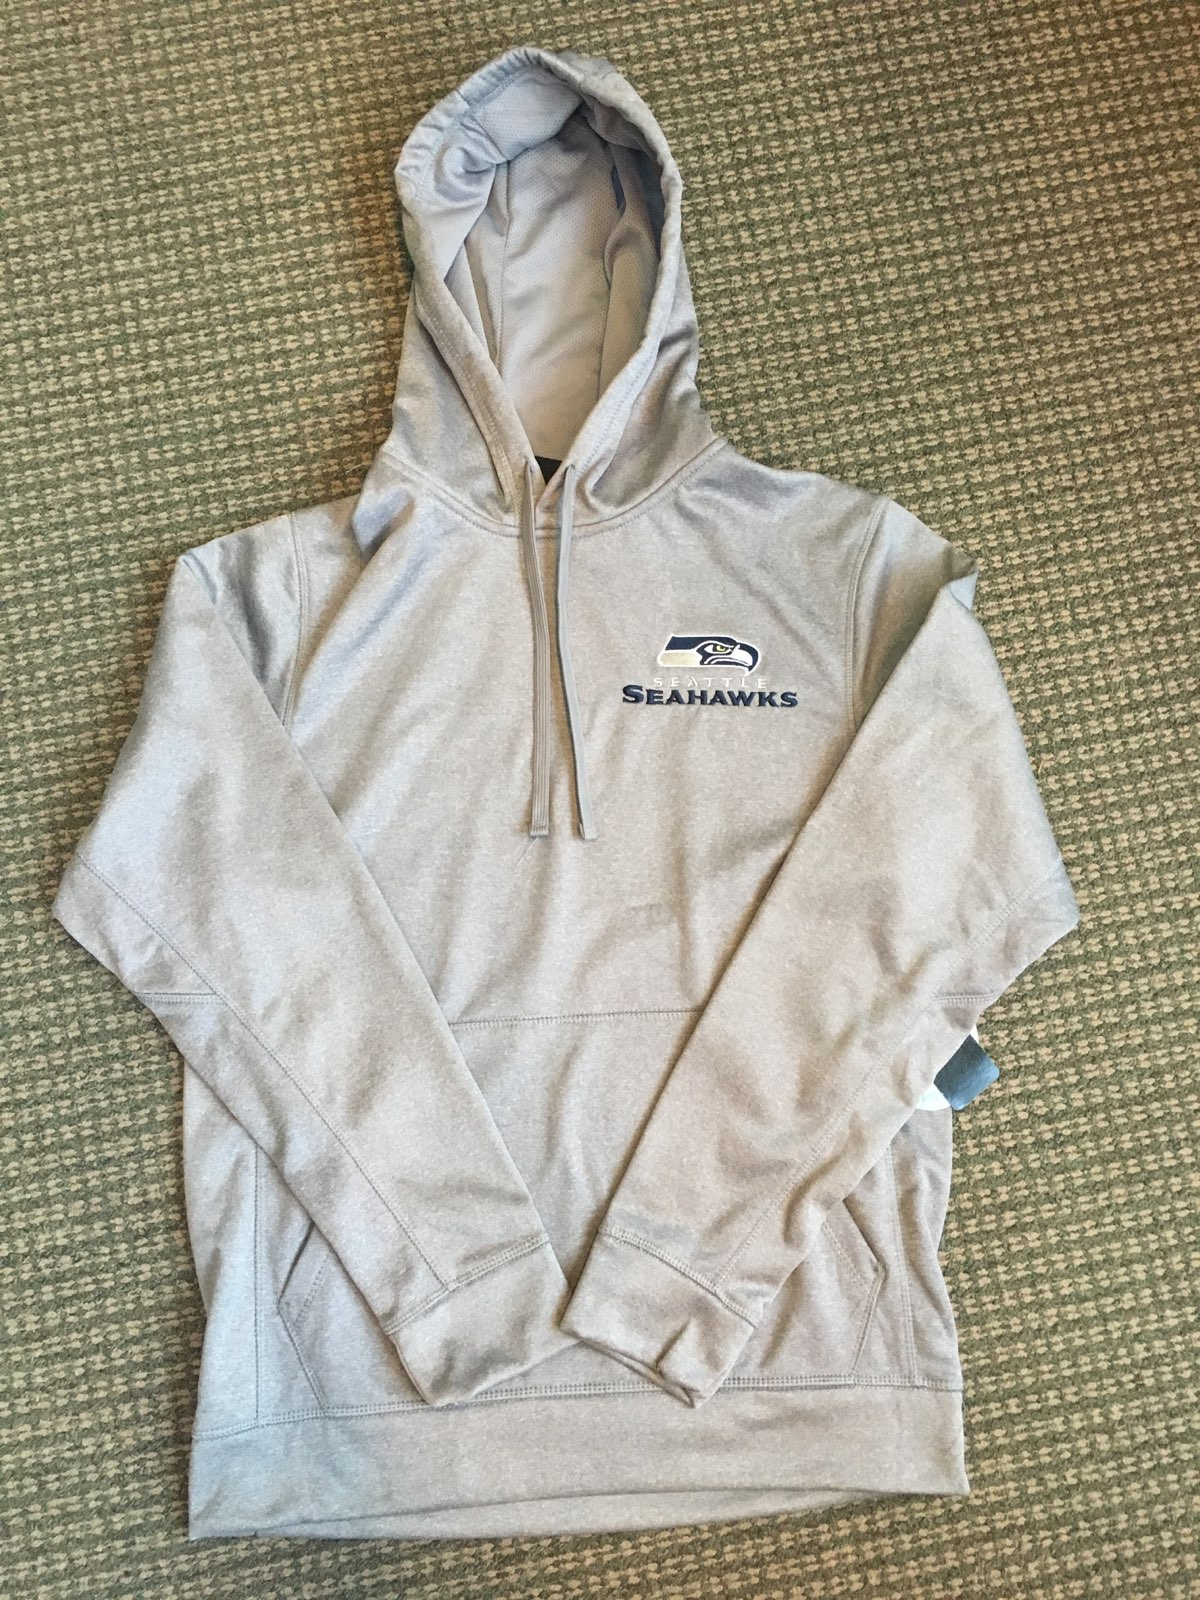 Seahawks Grey Dunbrooke hoodie Size Small